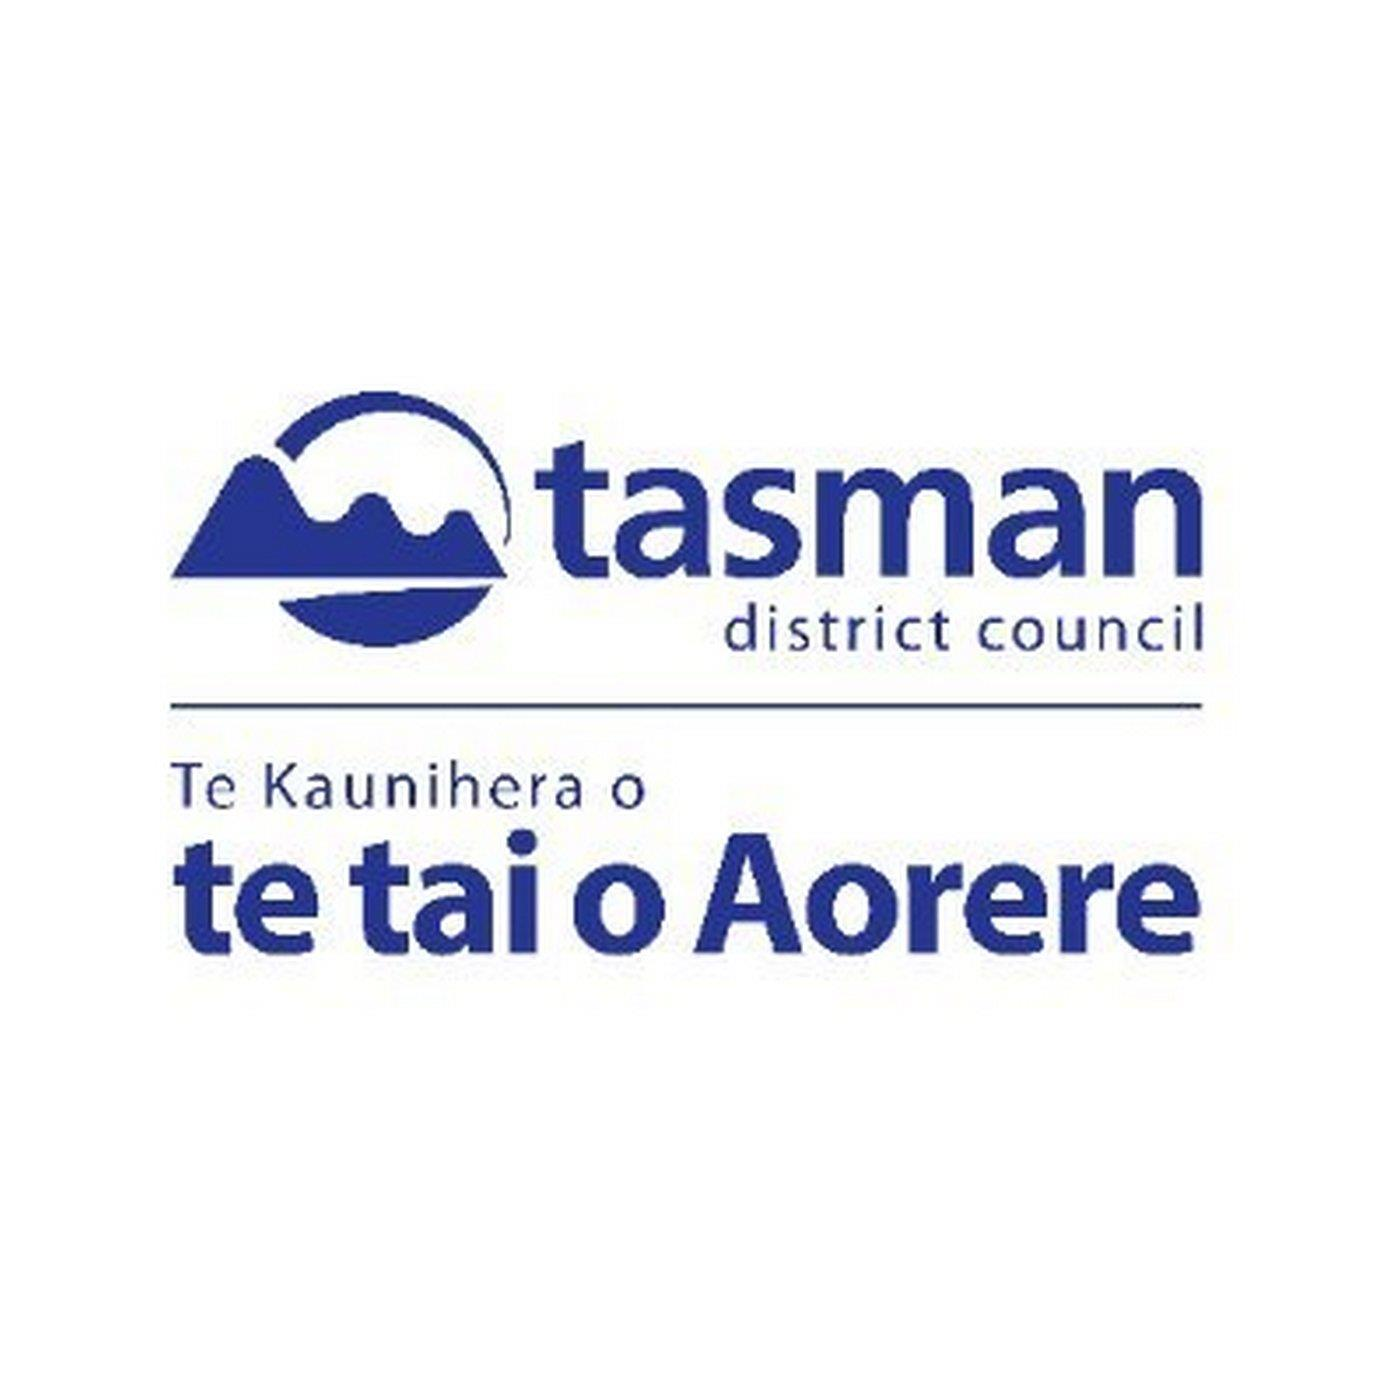 Tasman Environment Plan